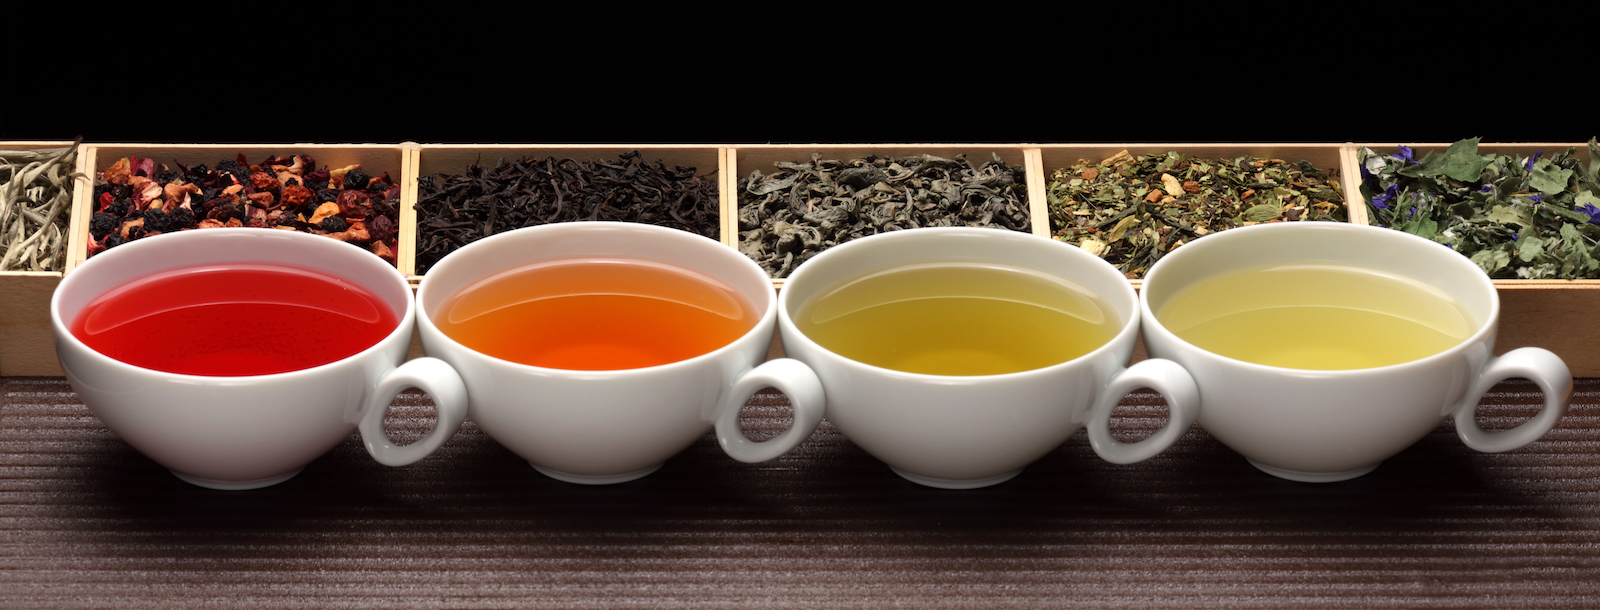 Detox Teas | 5 Best Detox Tea Brands (And Why People Love Them!)